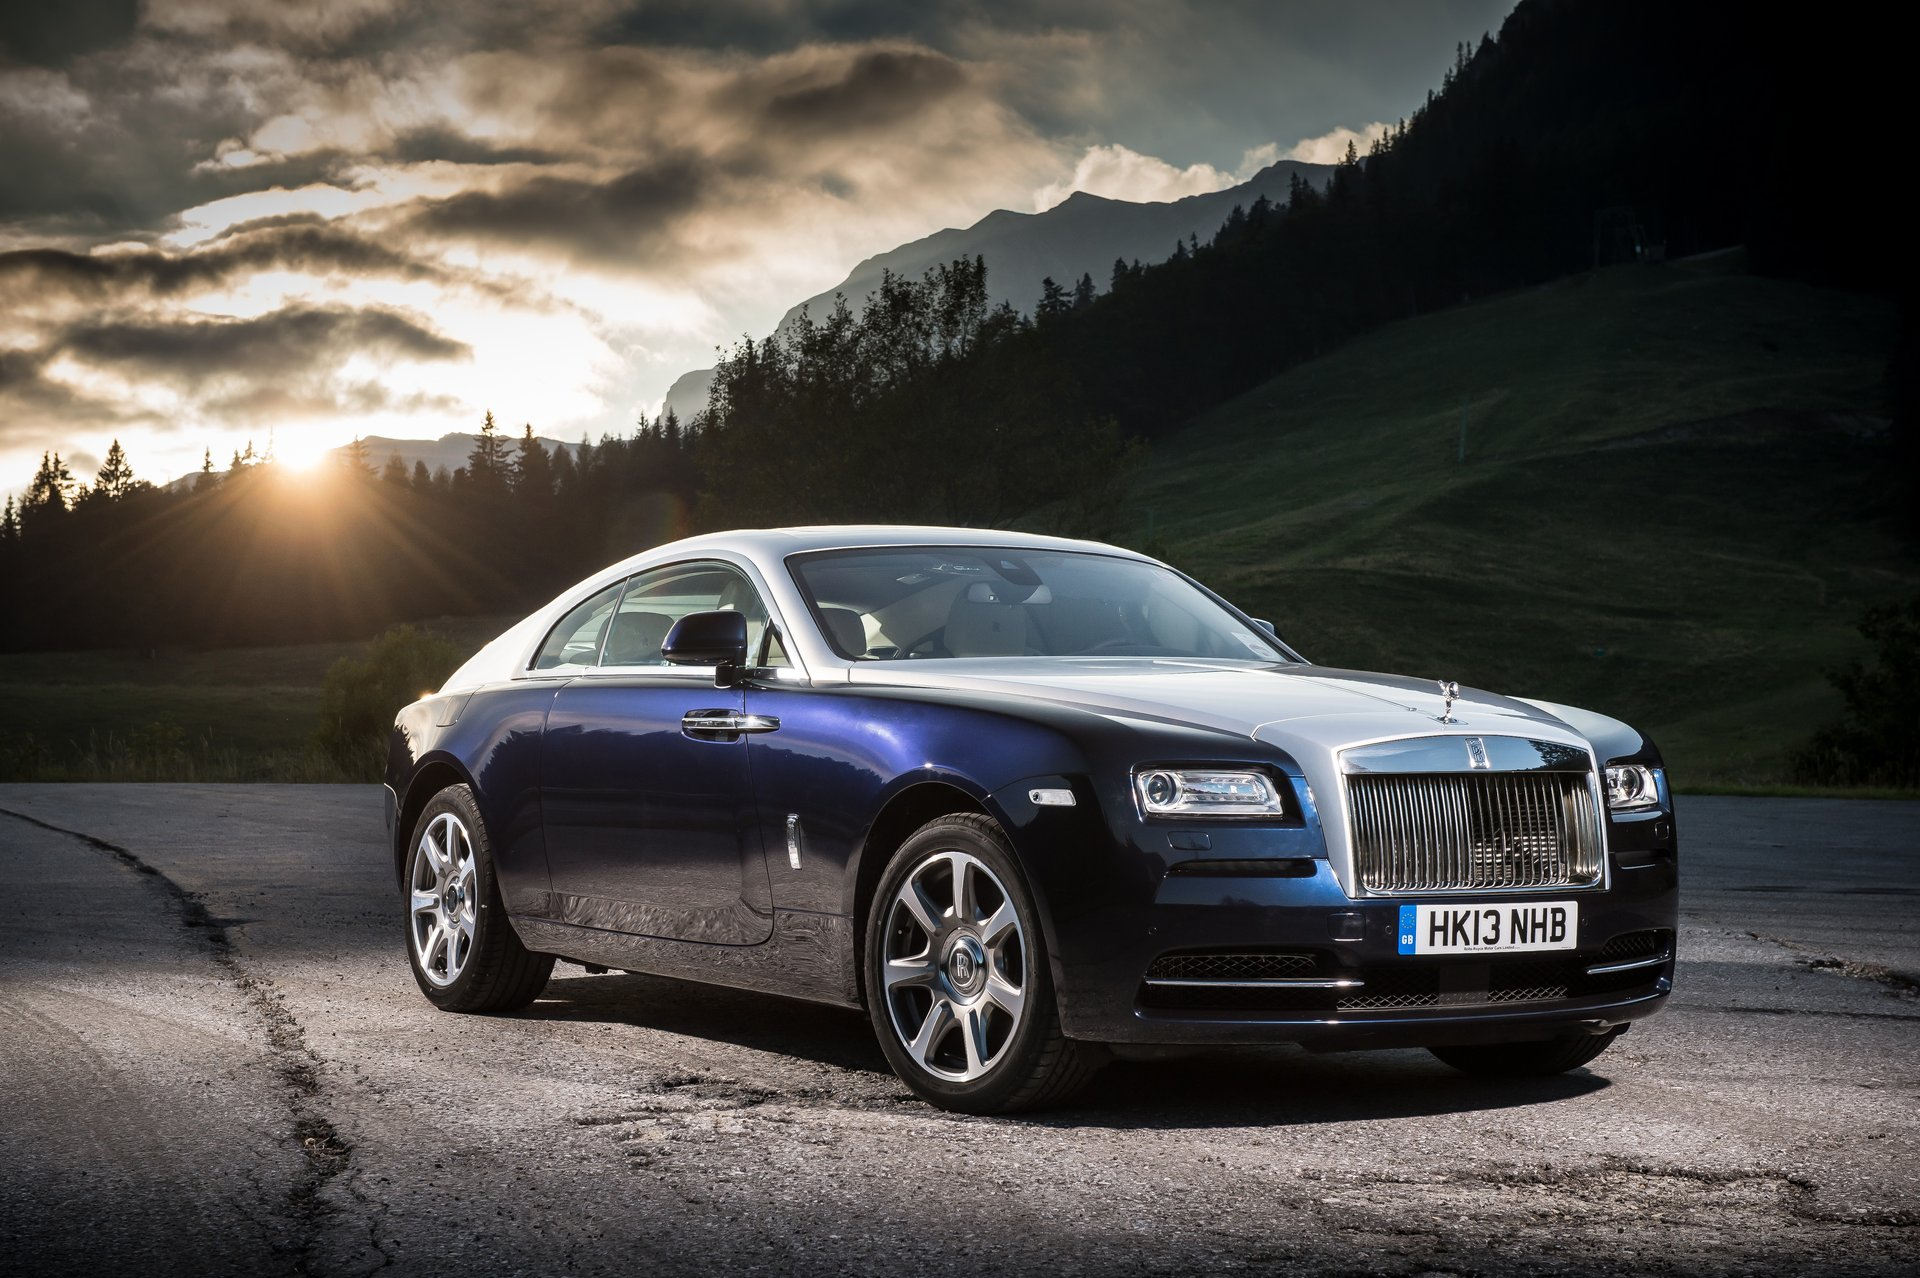 Mercedes Benz Of Memphis >> 2015 Rolls-Royce Wraith Review, Ratings, Specs, Prices, and Photos - The Car Connection